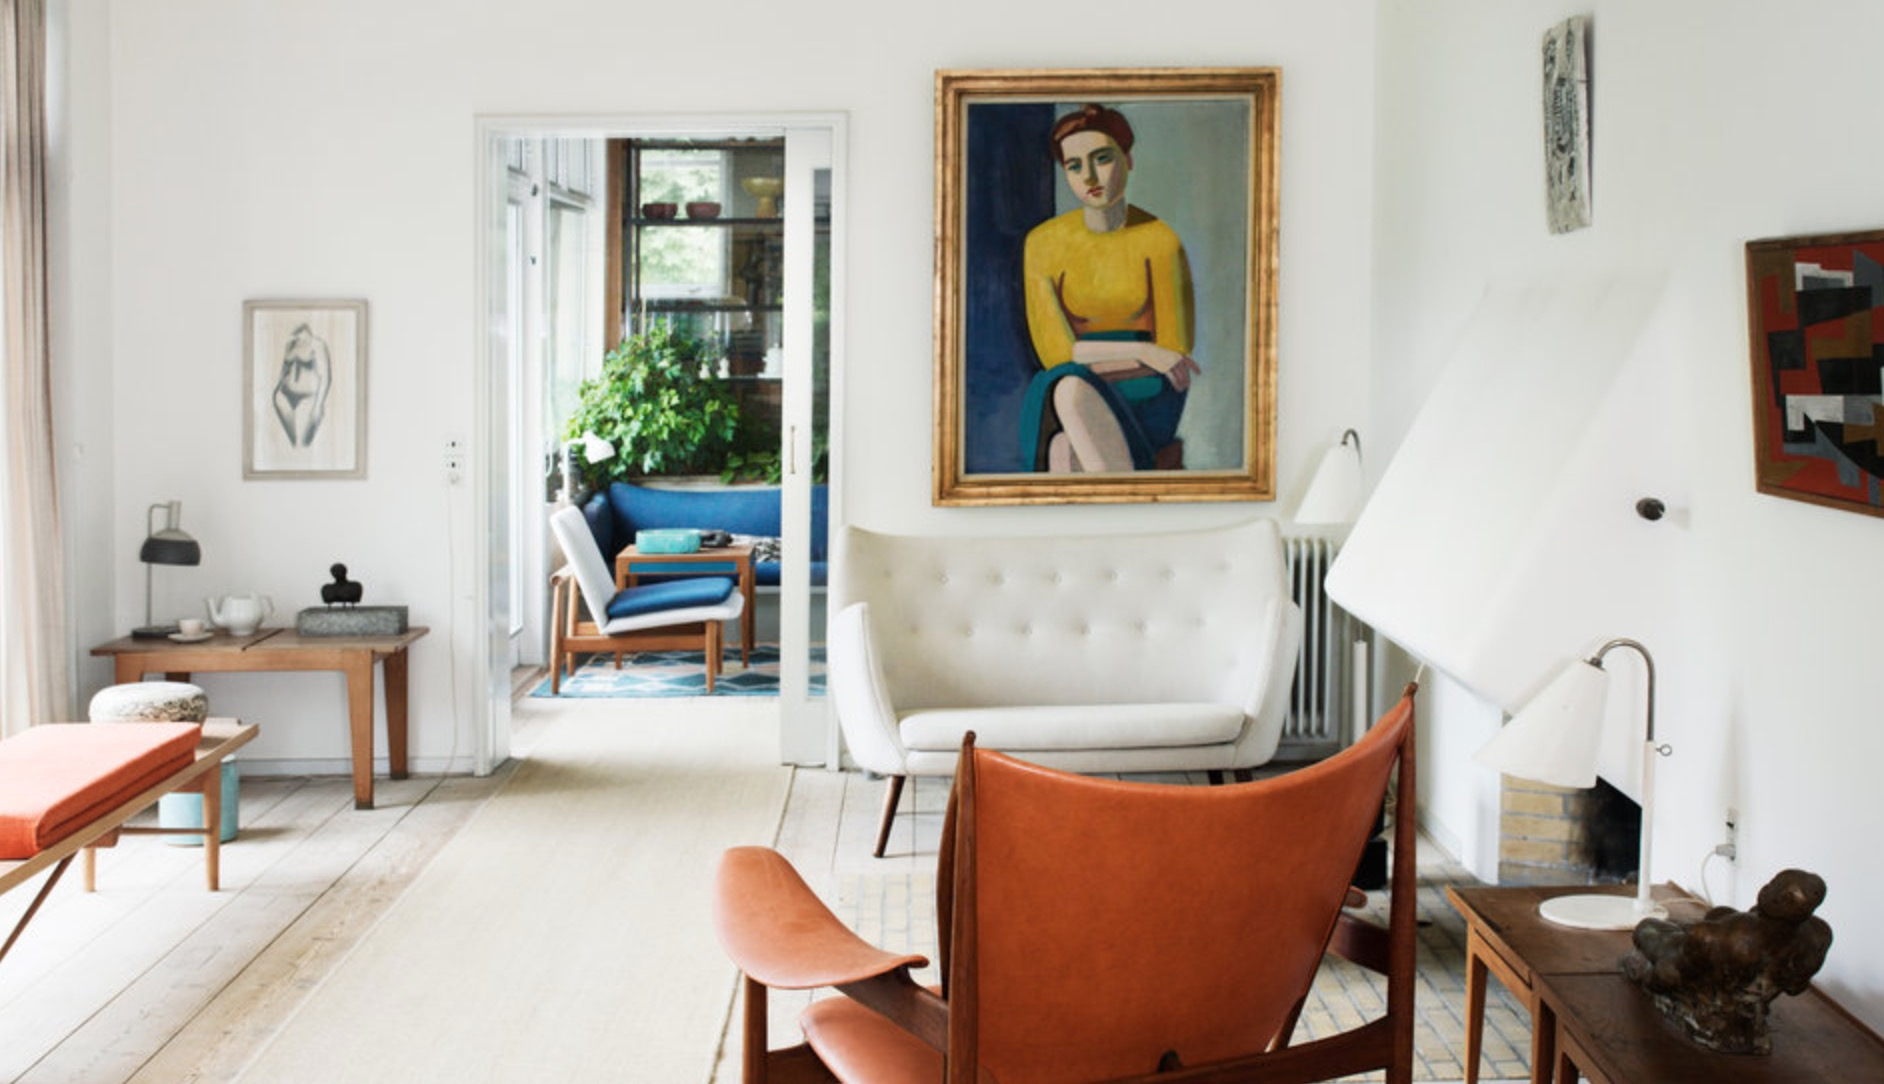 The 25 Rooms That Influence The Way We Design